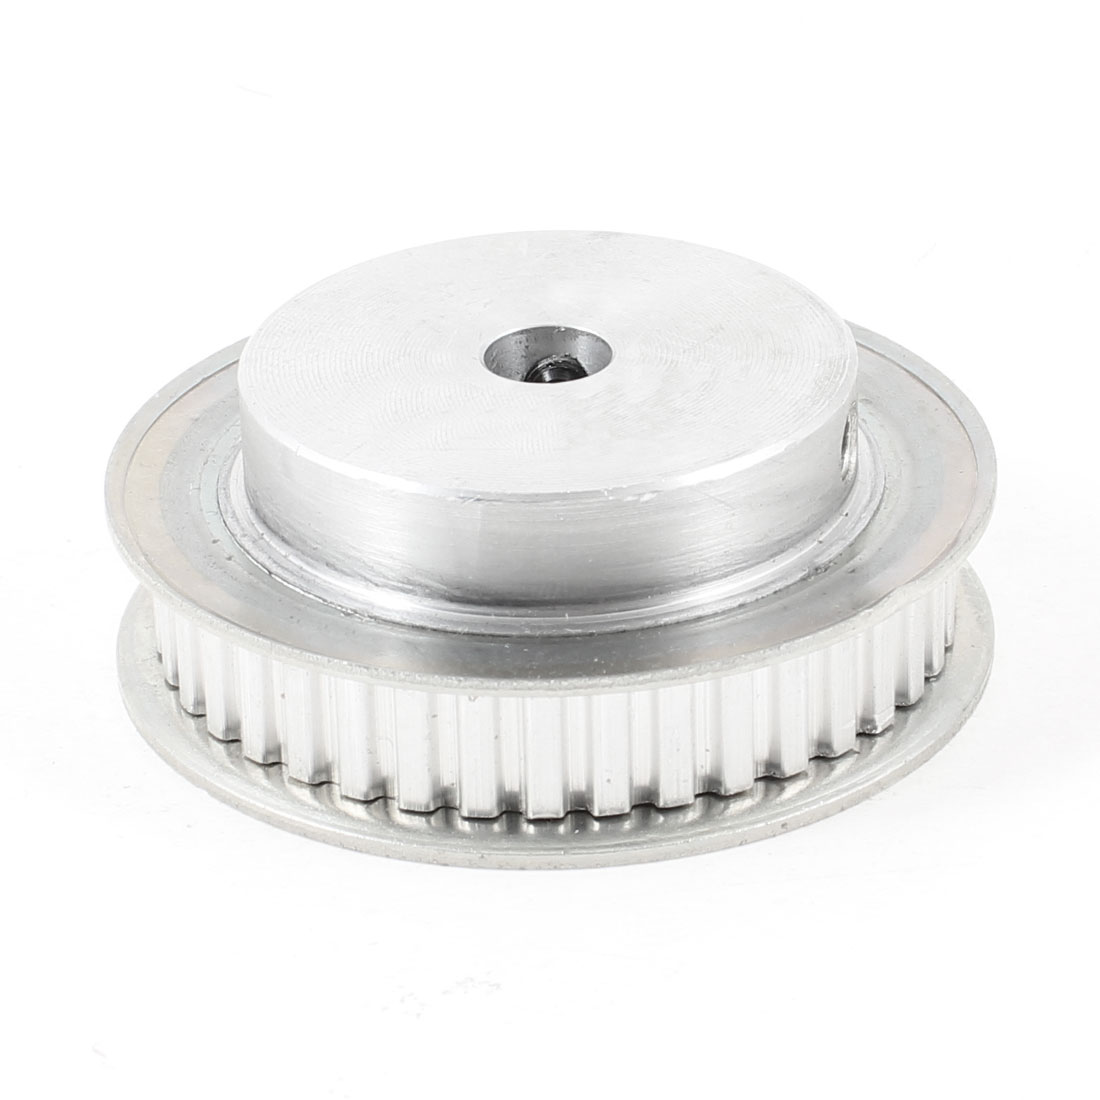 Silver Tone Aluminum Alloy 40 Teeth 10mm Pilot Bore Screwed Timing Pulley